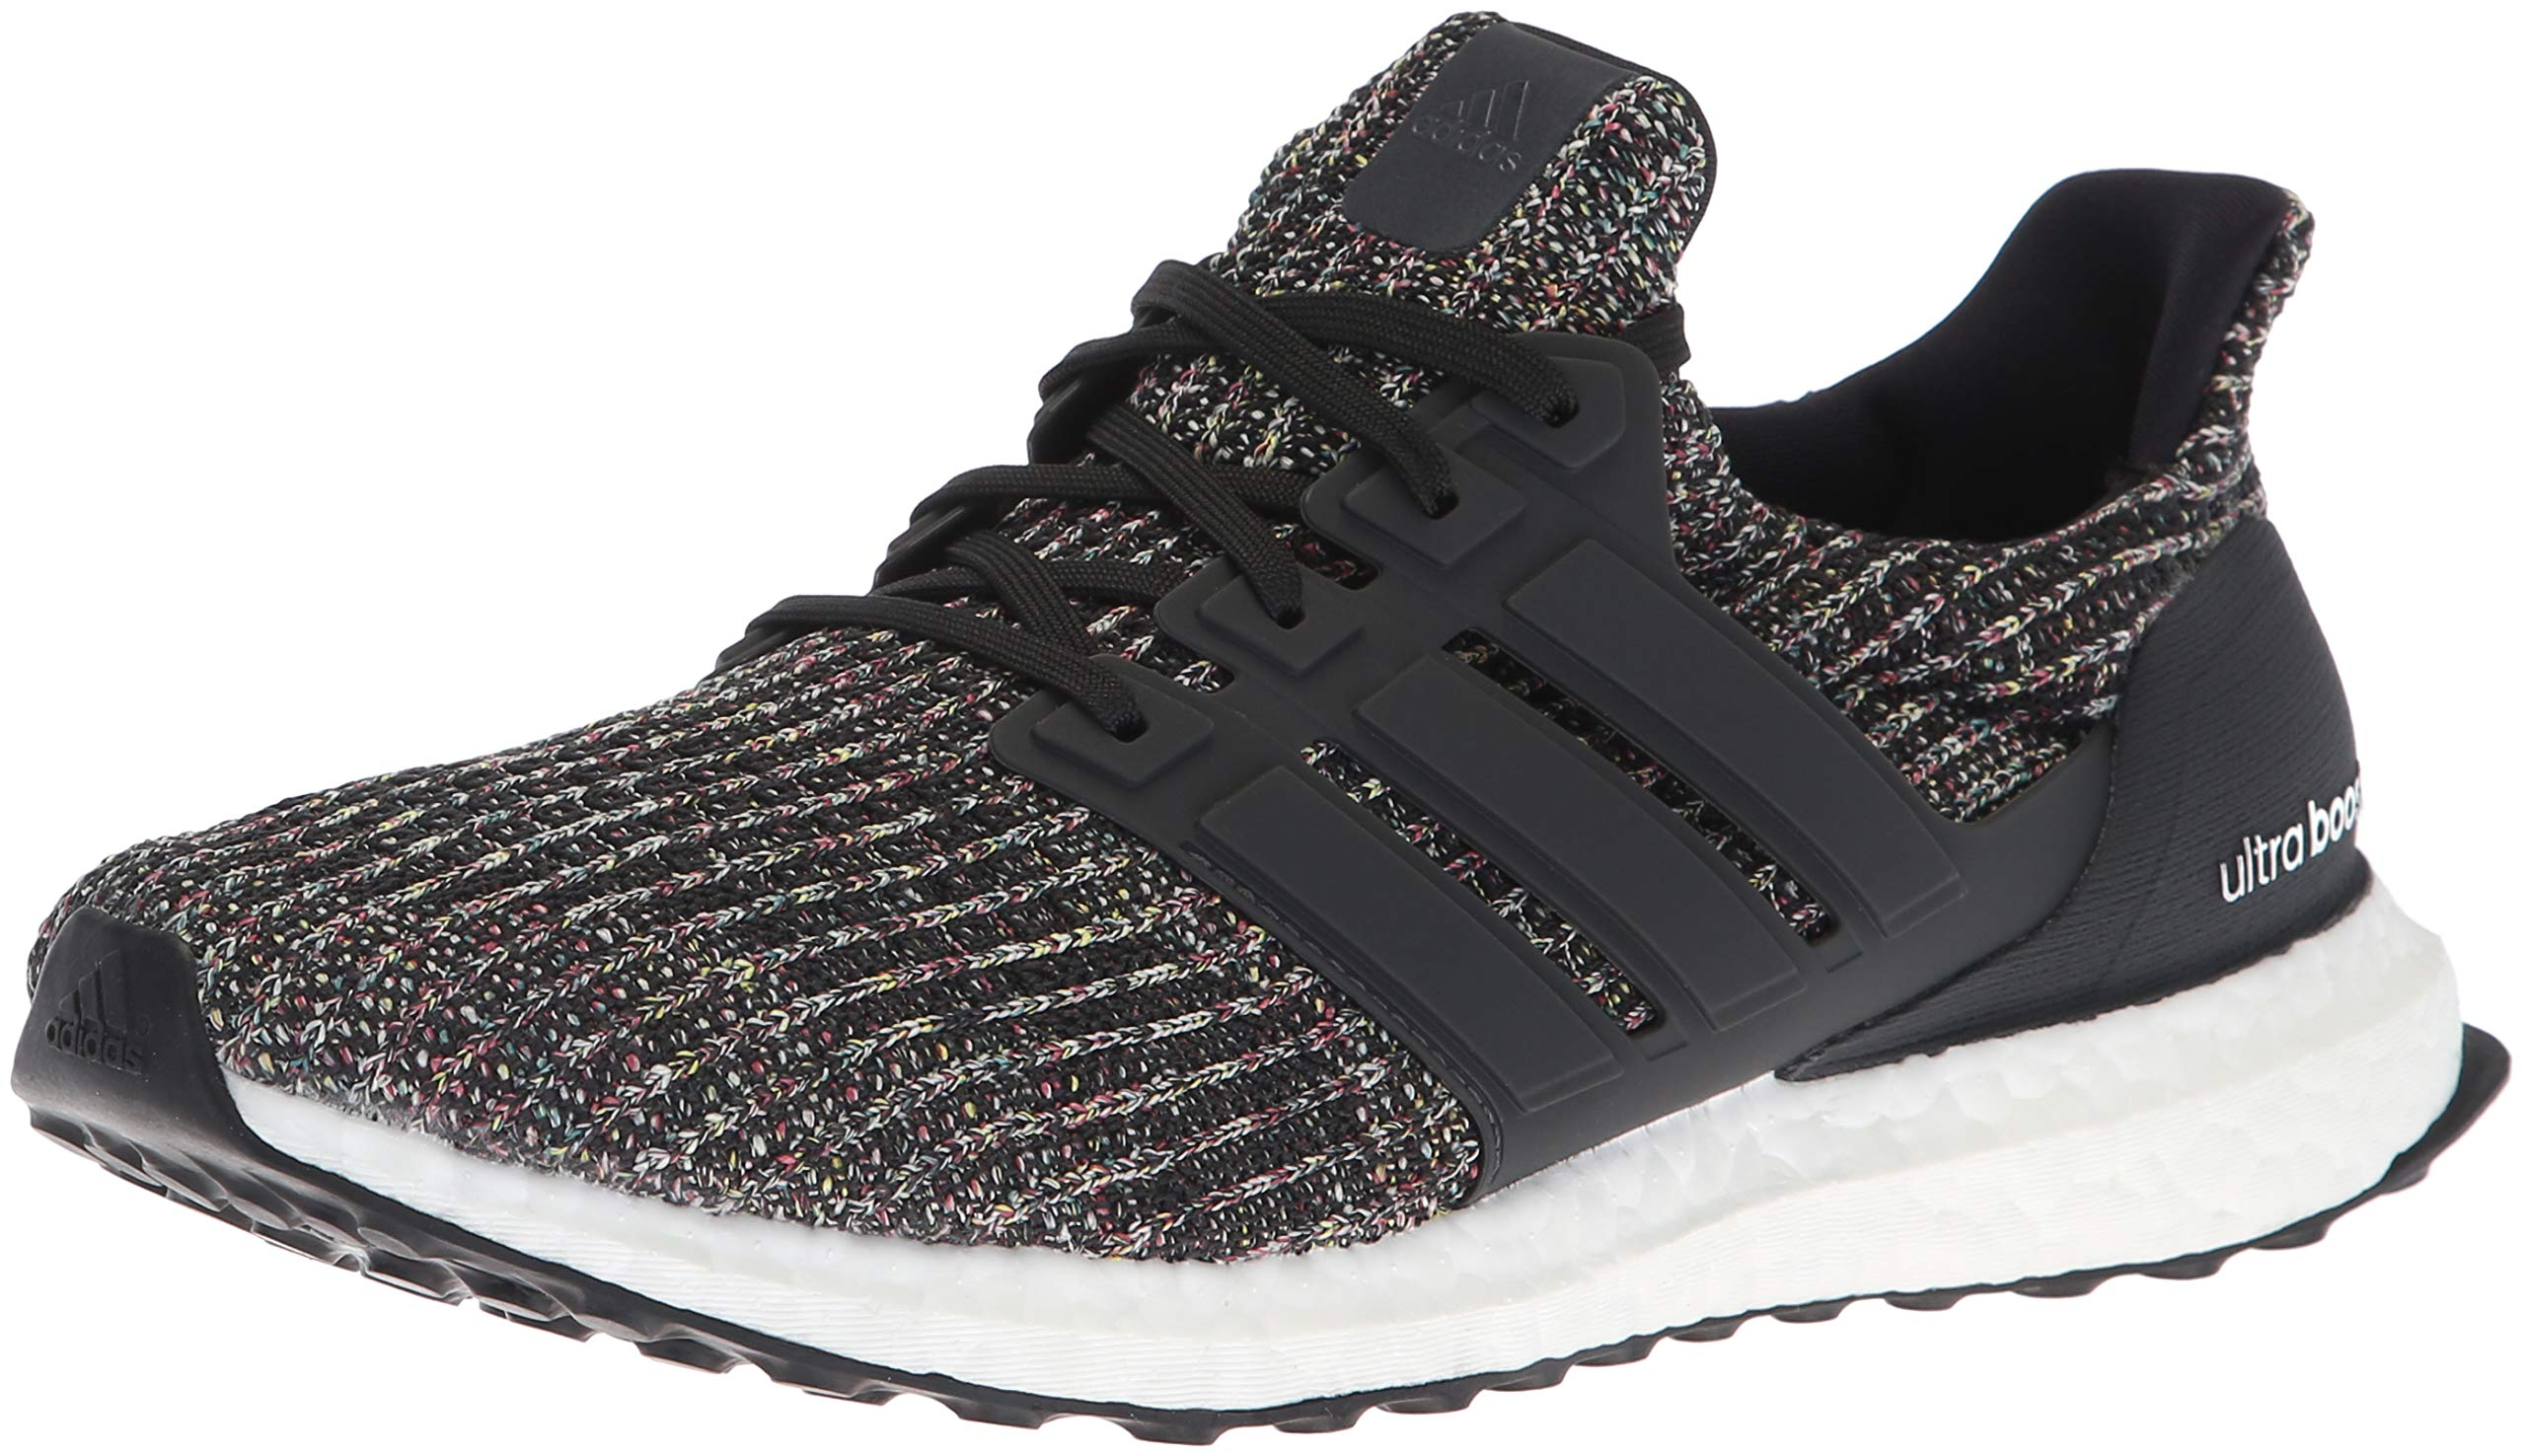 adidas Men's Ultraboost Running Shoe Black/Carbon/ash Silver 11 M US